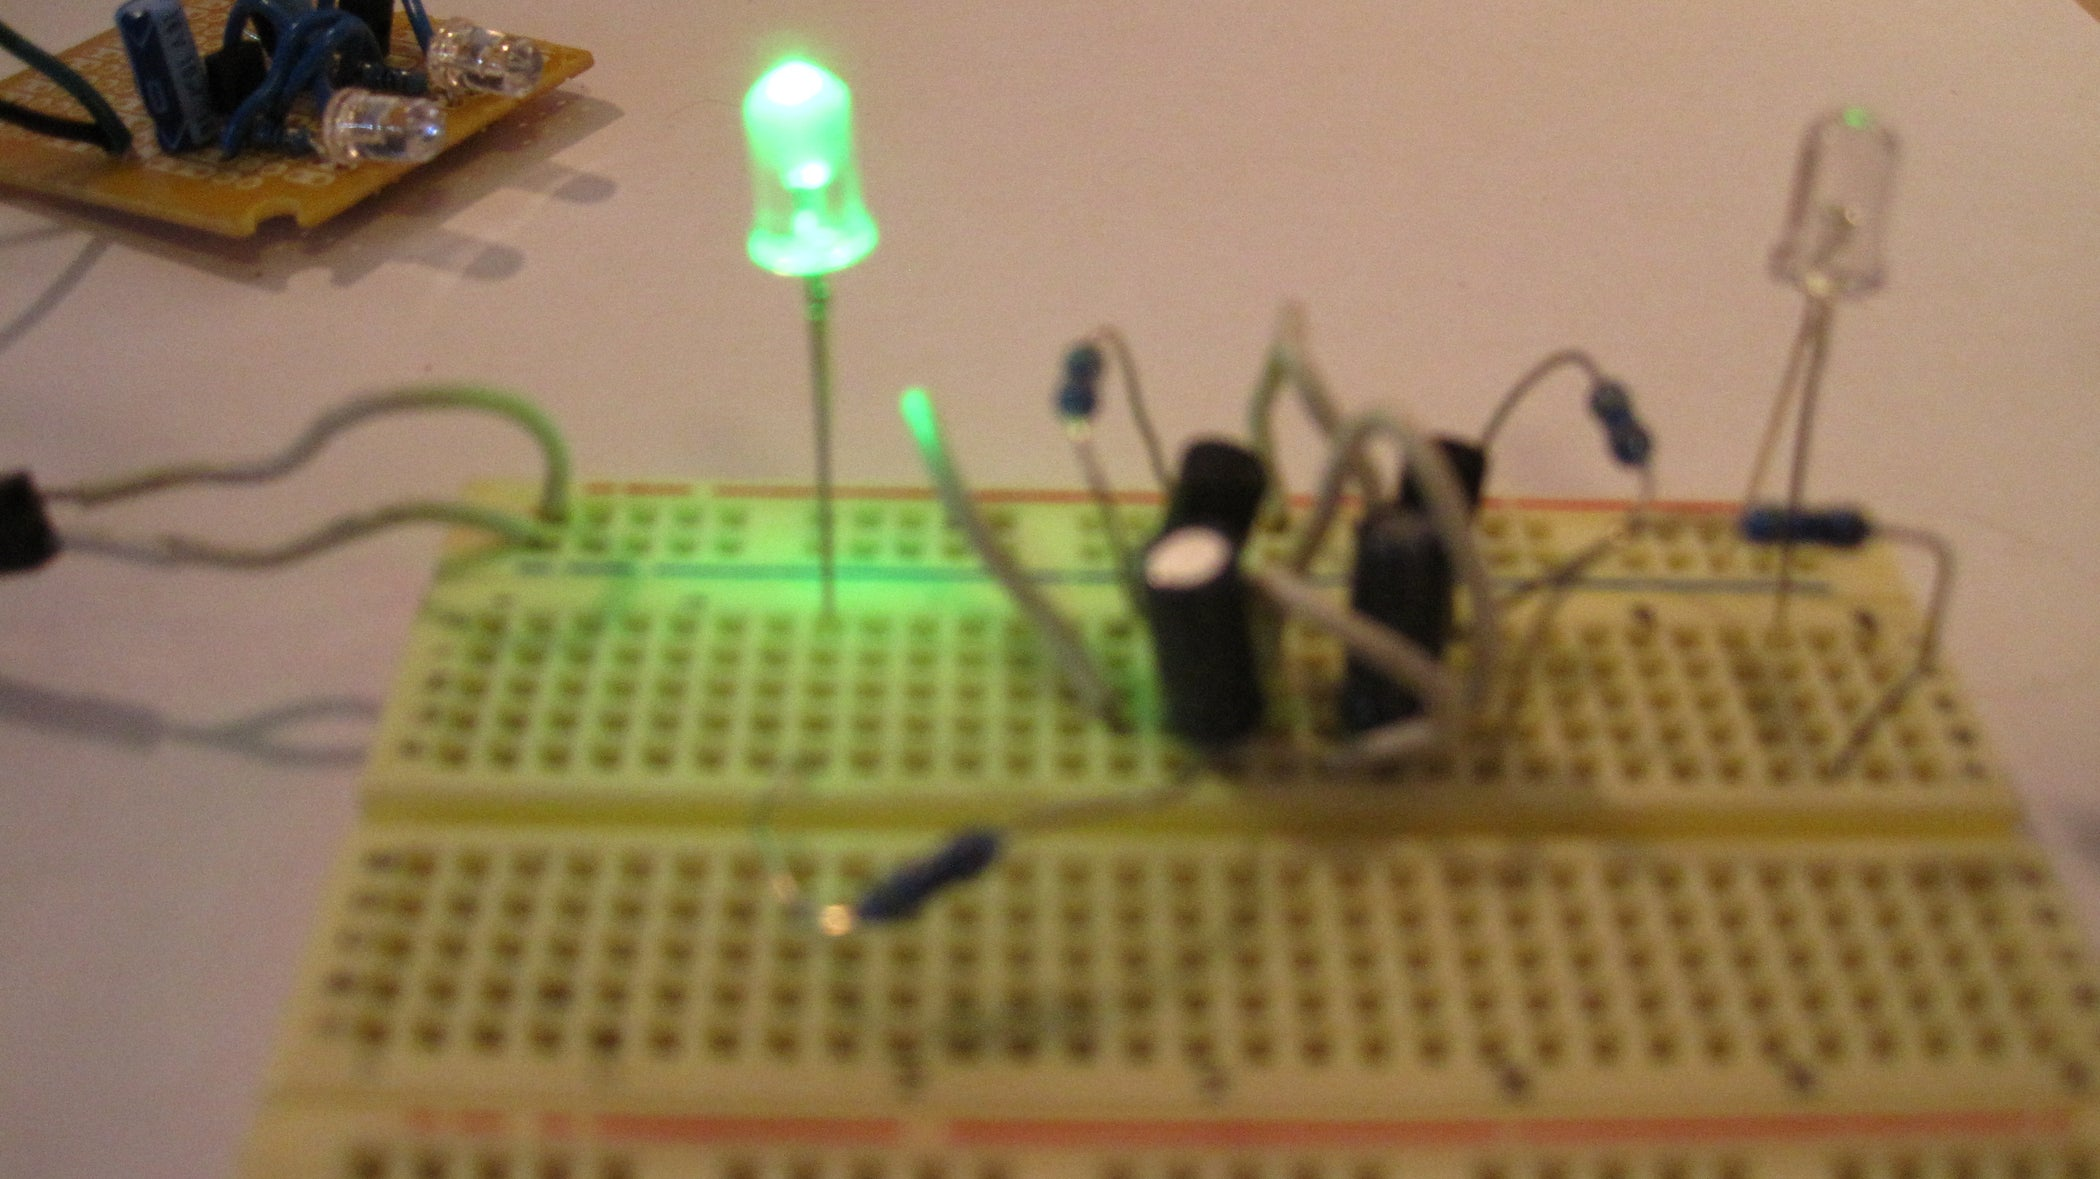 Two Transistor Led Flasher Circuit 5 Steps 555 One Blinking 1